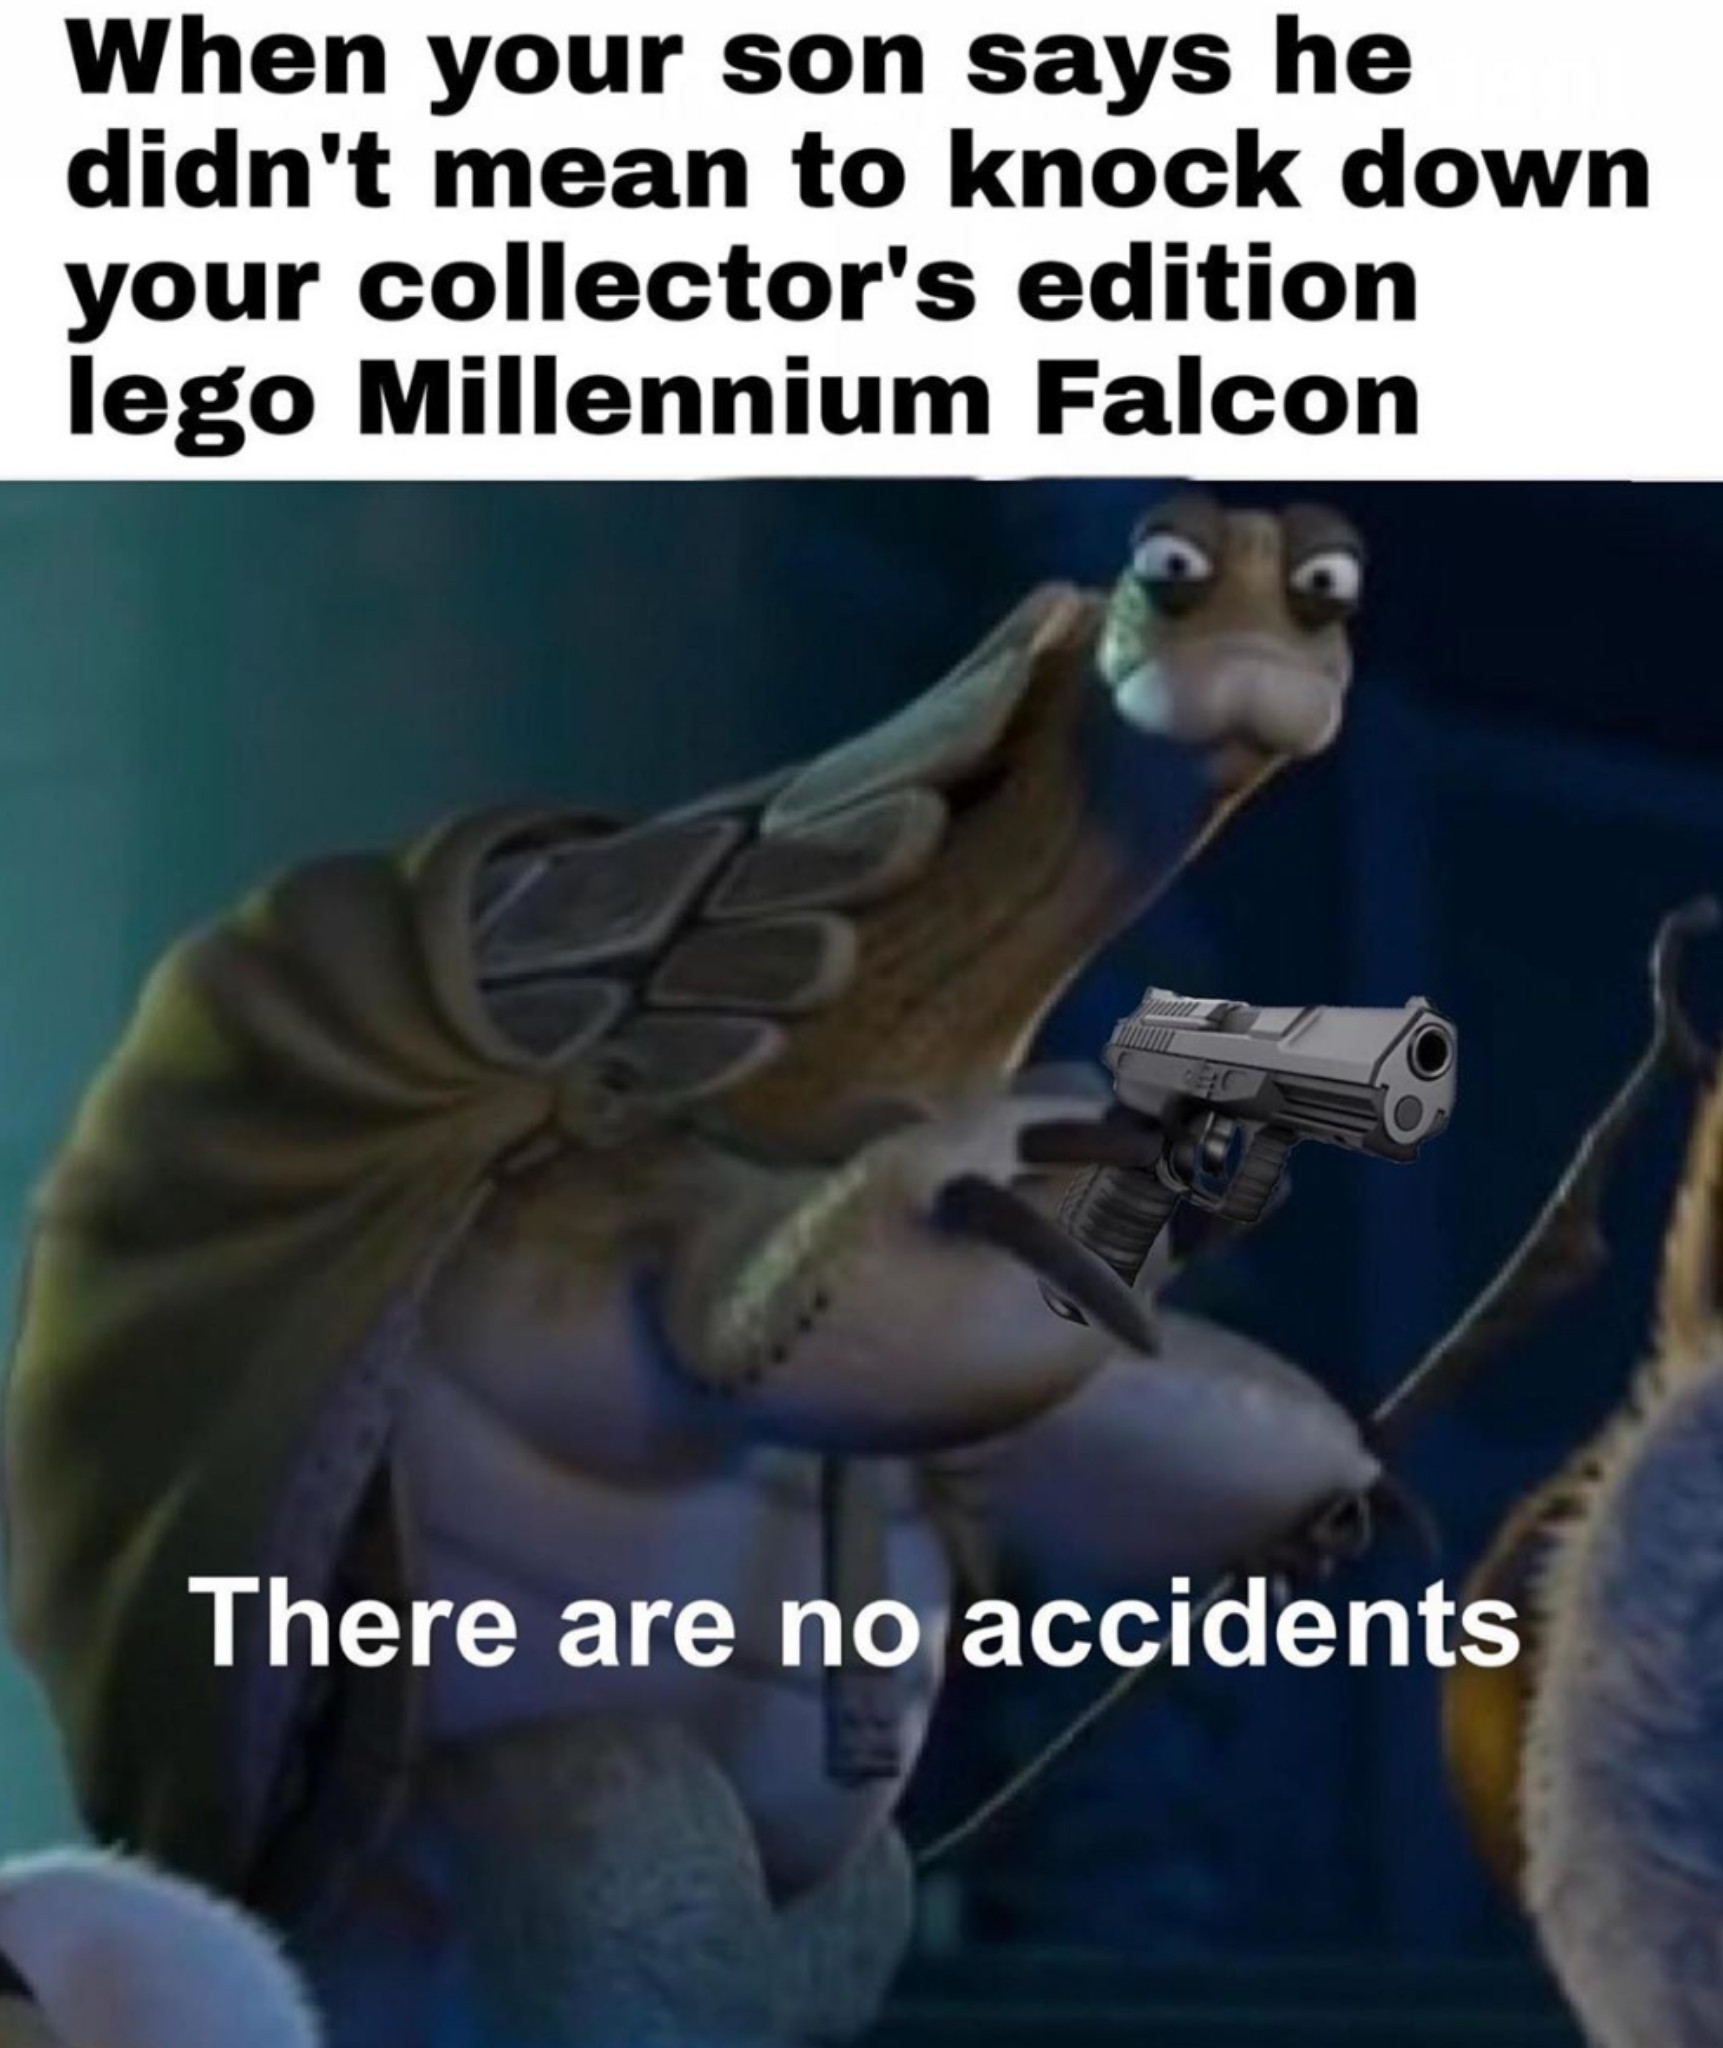 Years ago I had a friend destroy my Lego Slave 1 and I never forgave for it, glad I stopped talking to him - meme